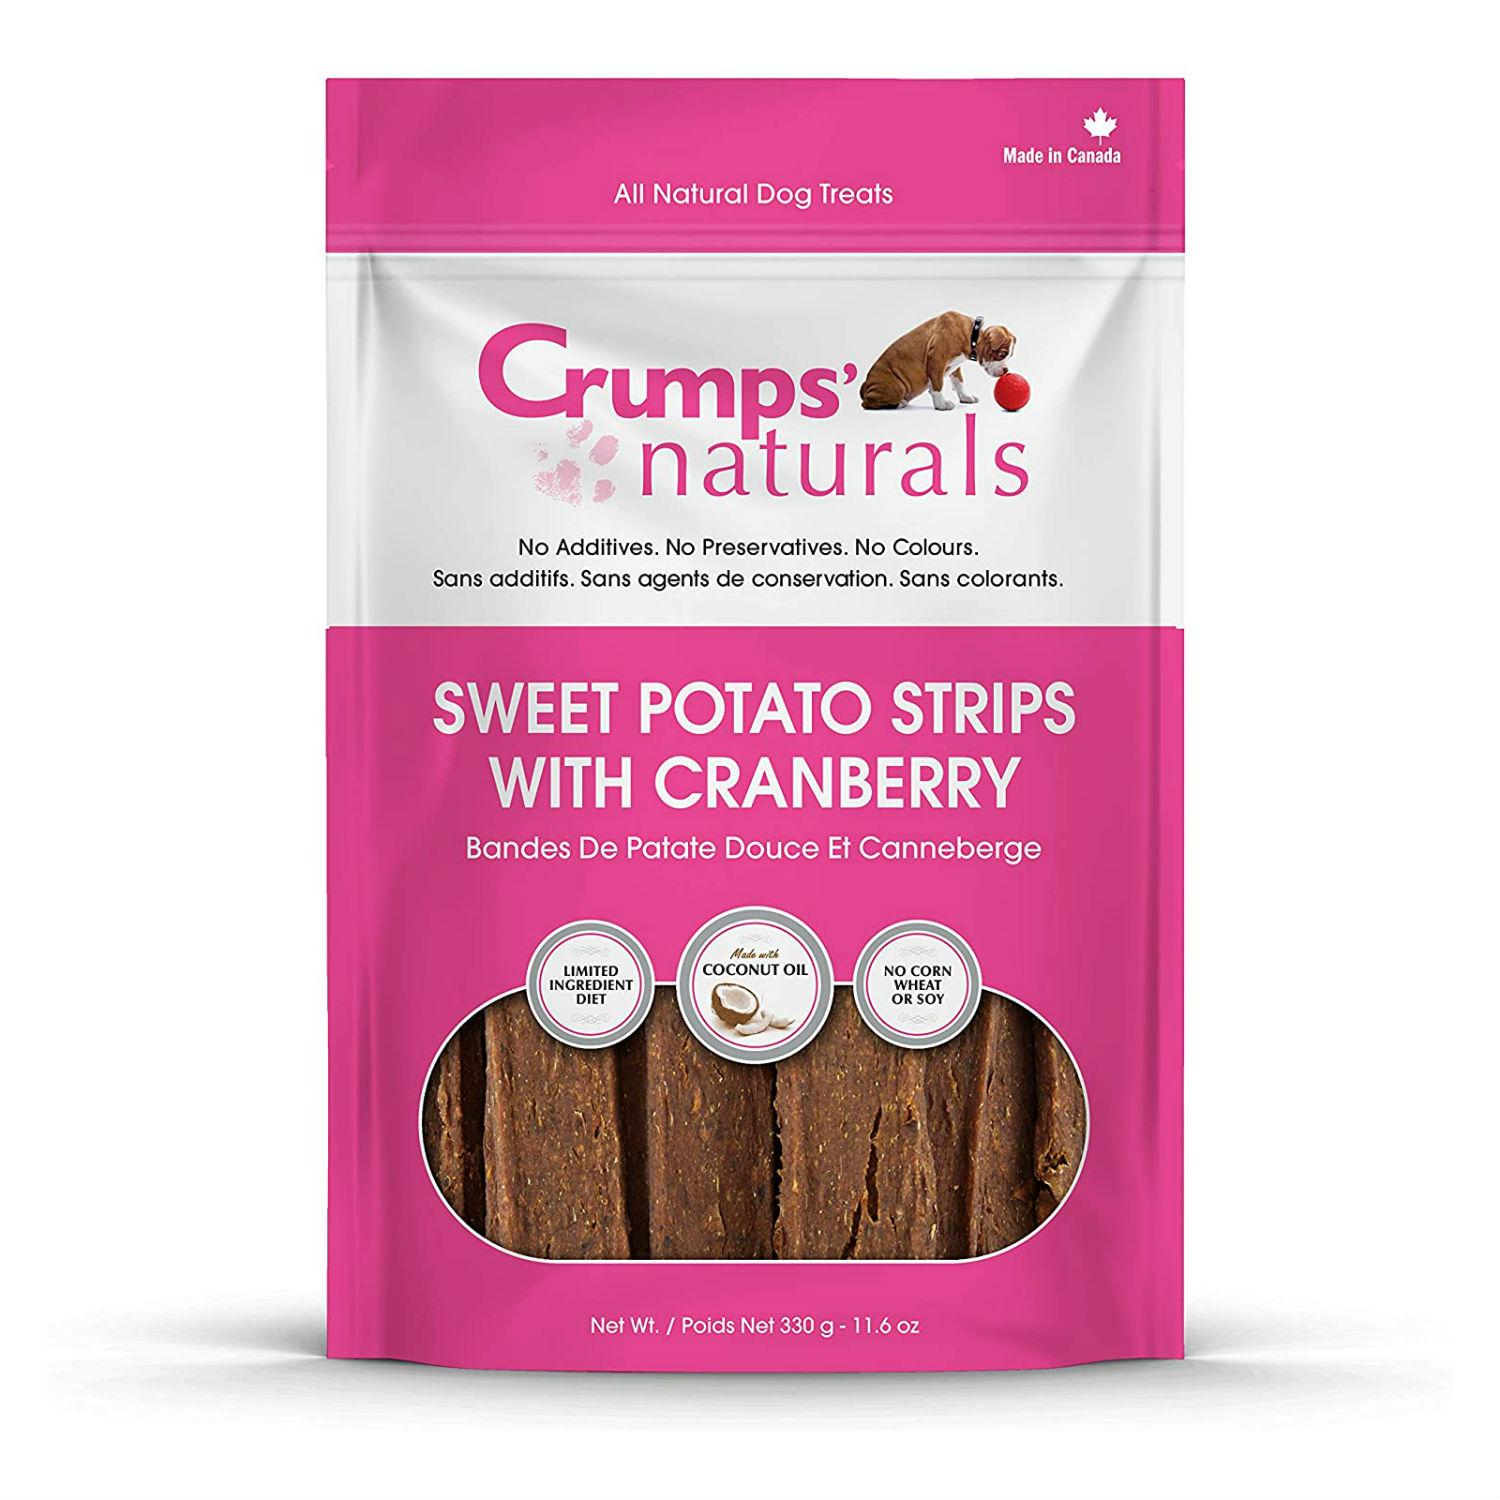 Crumps' Naturals Sweet Potato Strips with Cranberry Chews Dog Treats